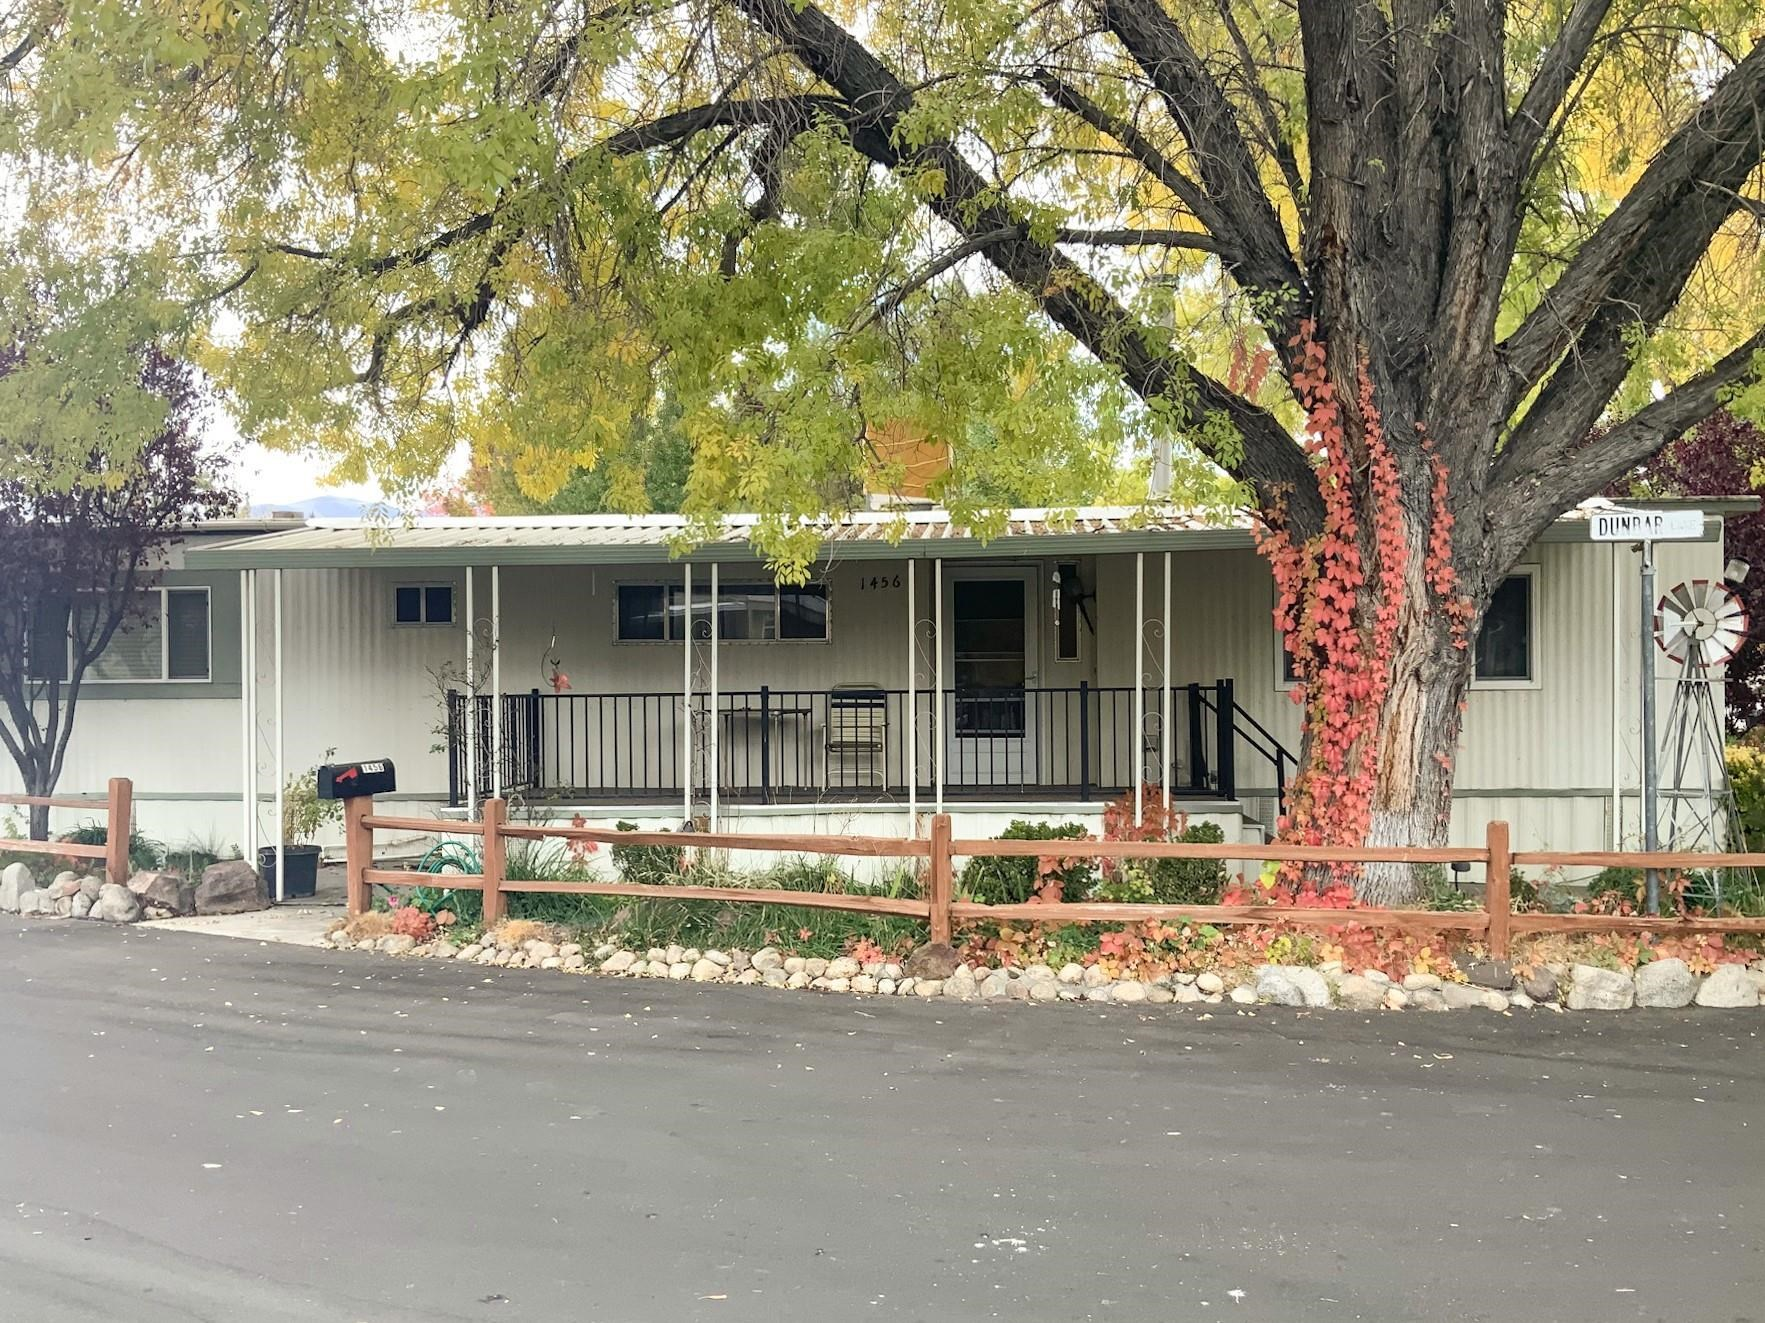 This is a 2 bedroom 2 bathroom mobile home on a quiet interior corner of Highlands Sr mobile home park. Covered patio, large shade trees. Light interior with most windows being dual pane. Kitchen was updated several years ago. Spacious bedrooms. Laundry area.